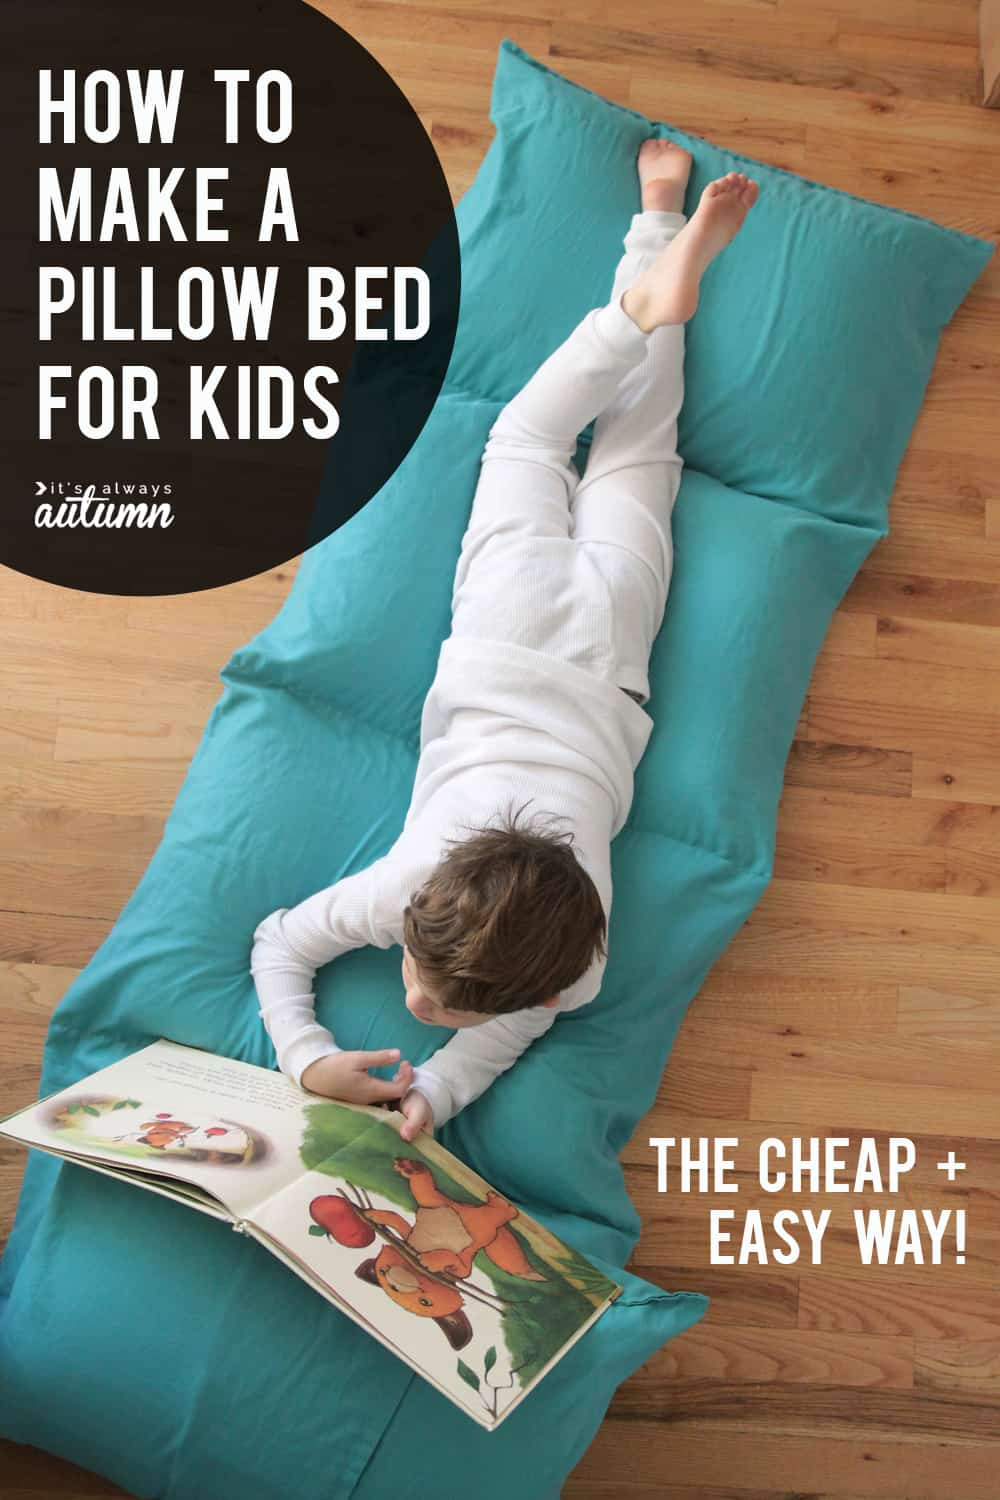 Full pillow bed for kids